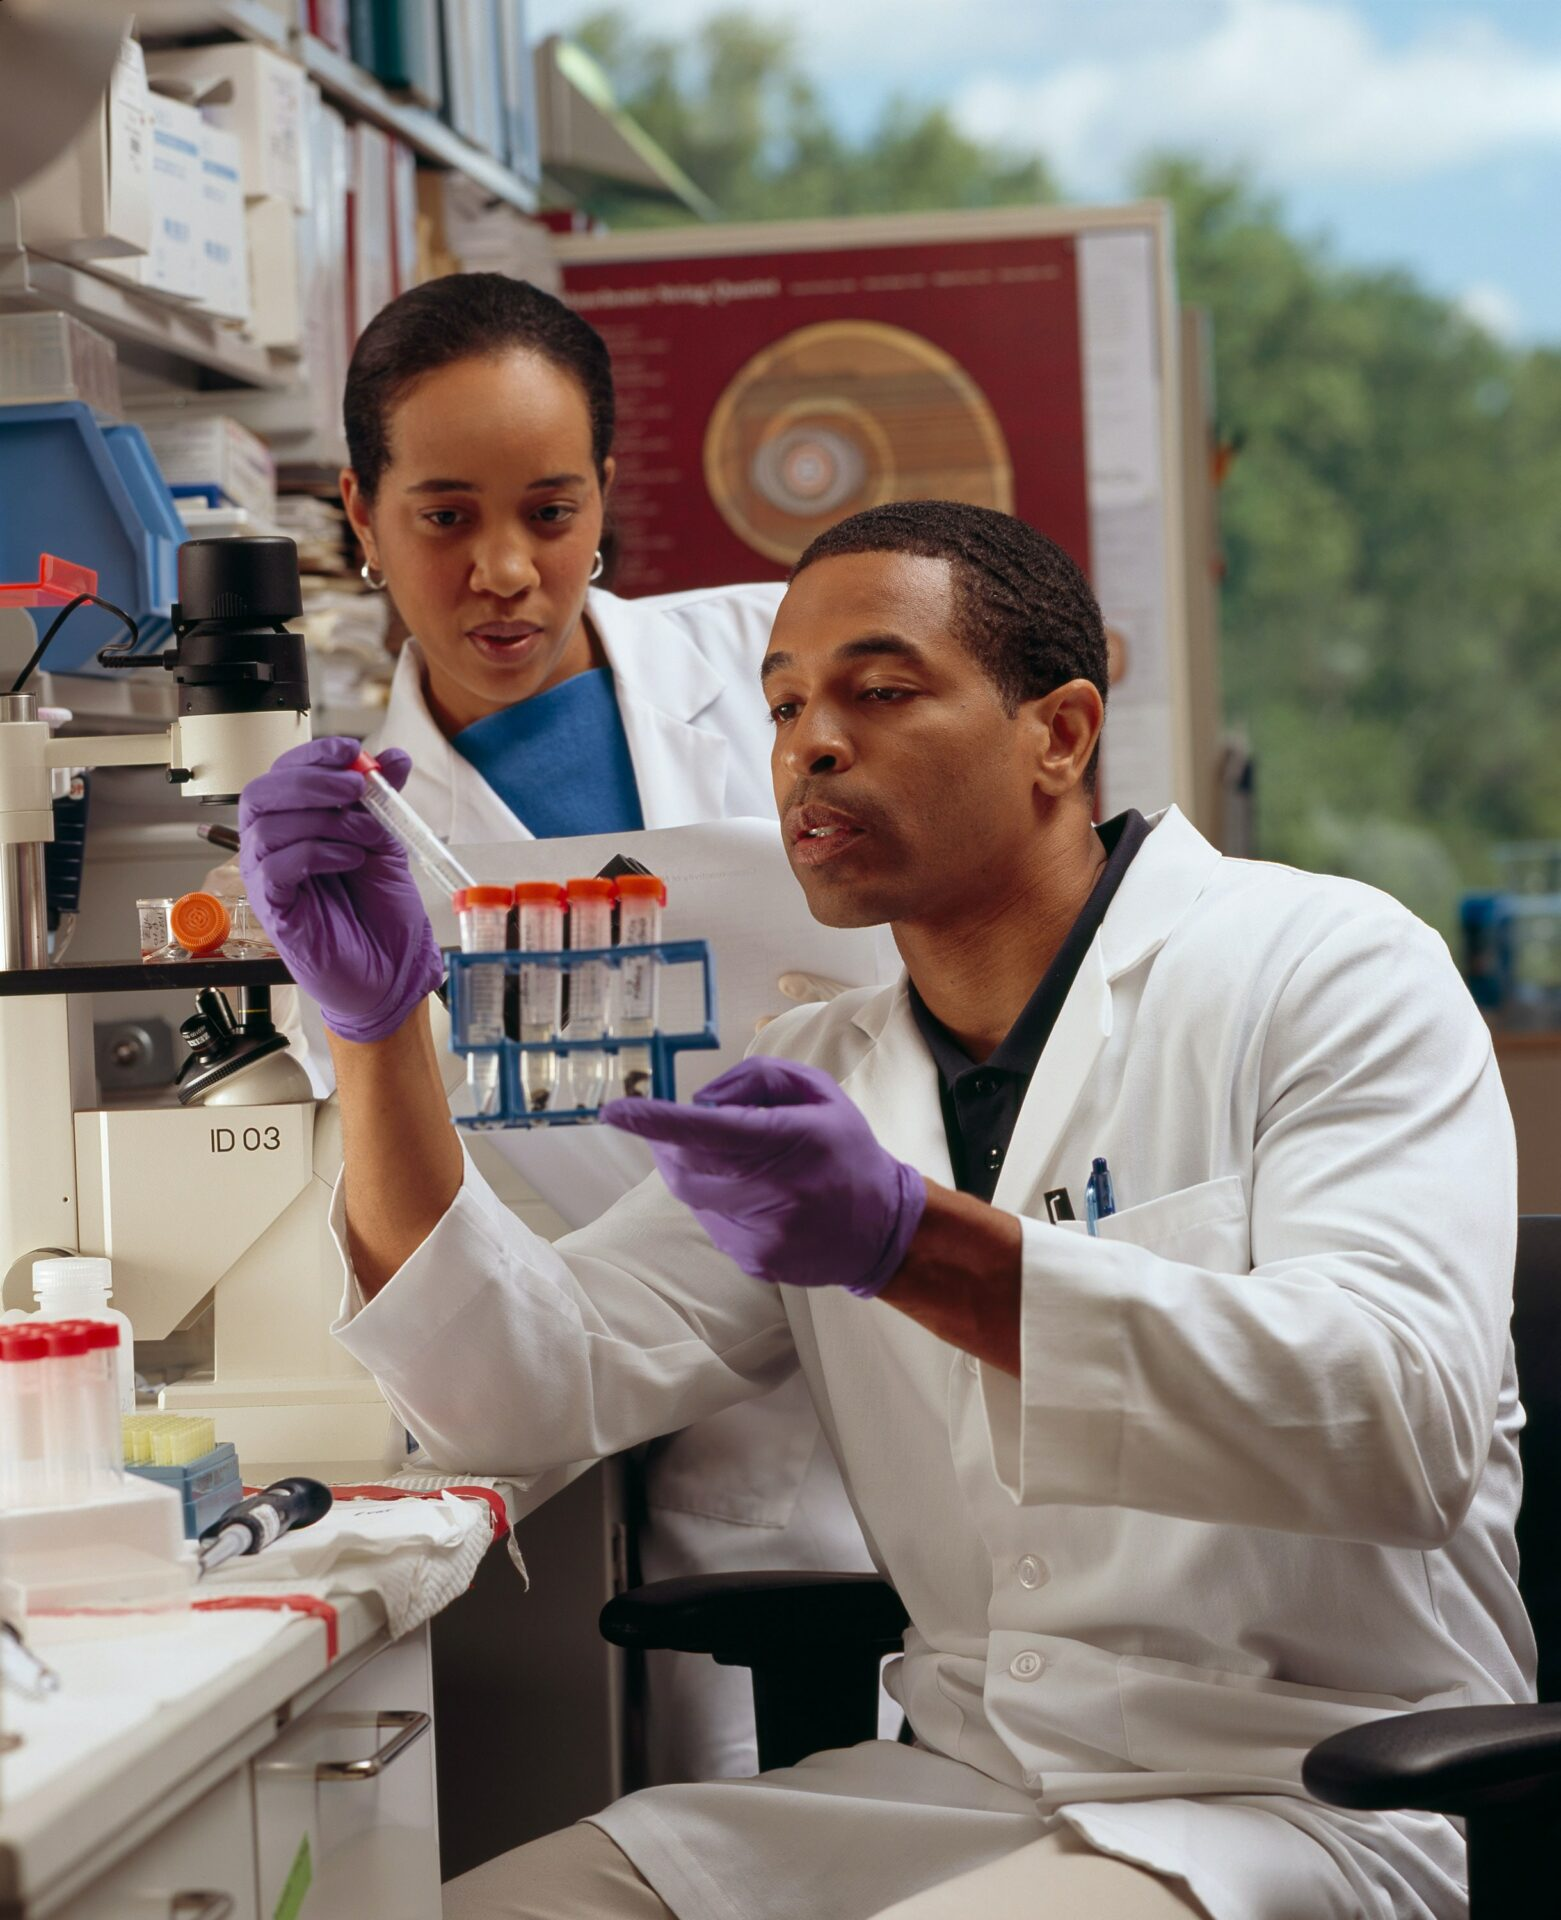 Two scientists look at a test in a lab for the national cancer institute.